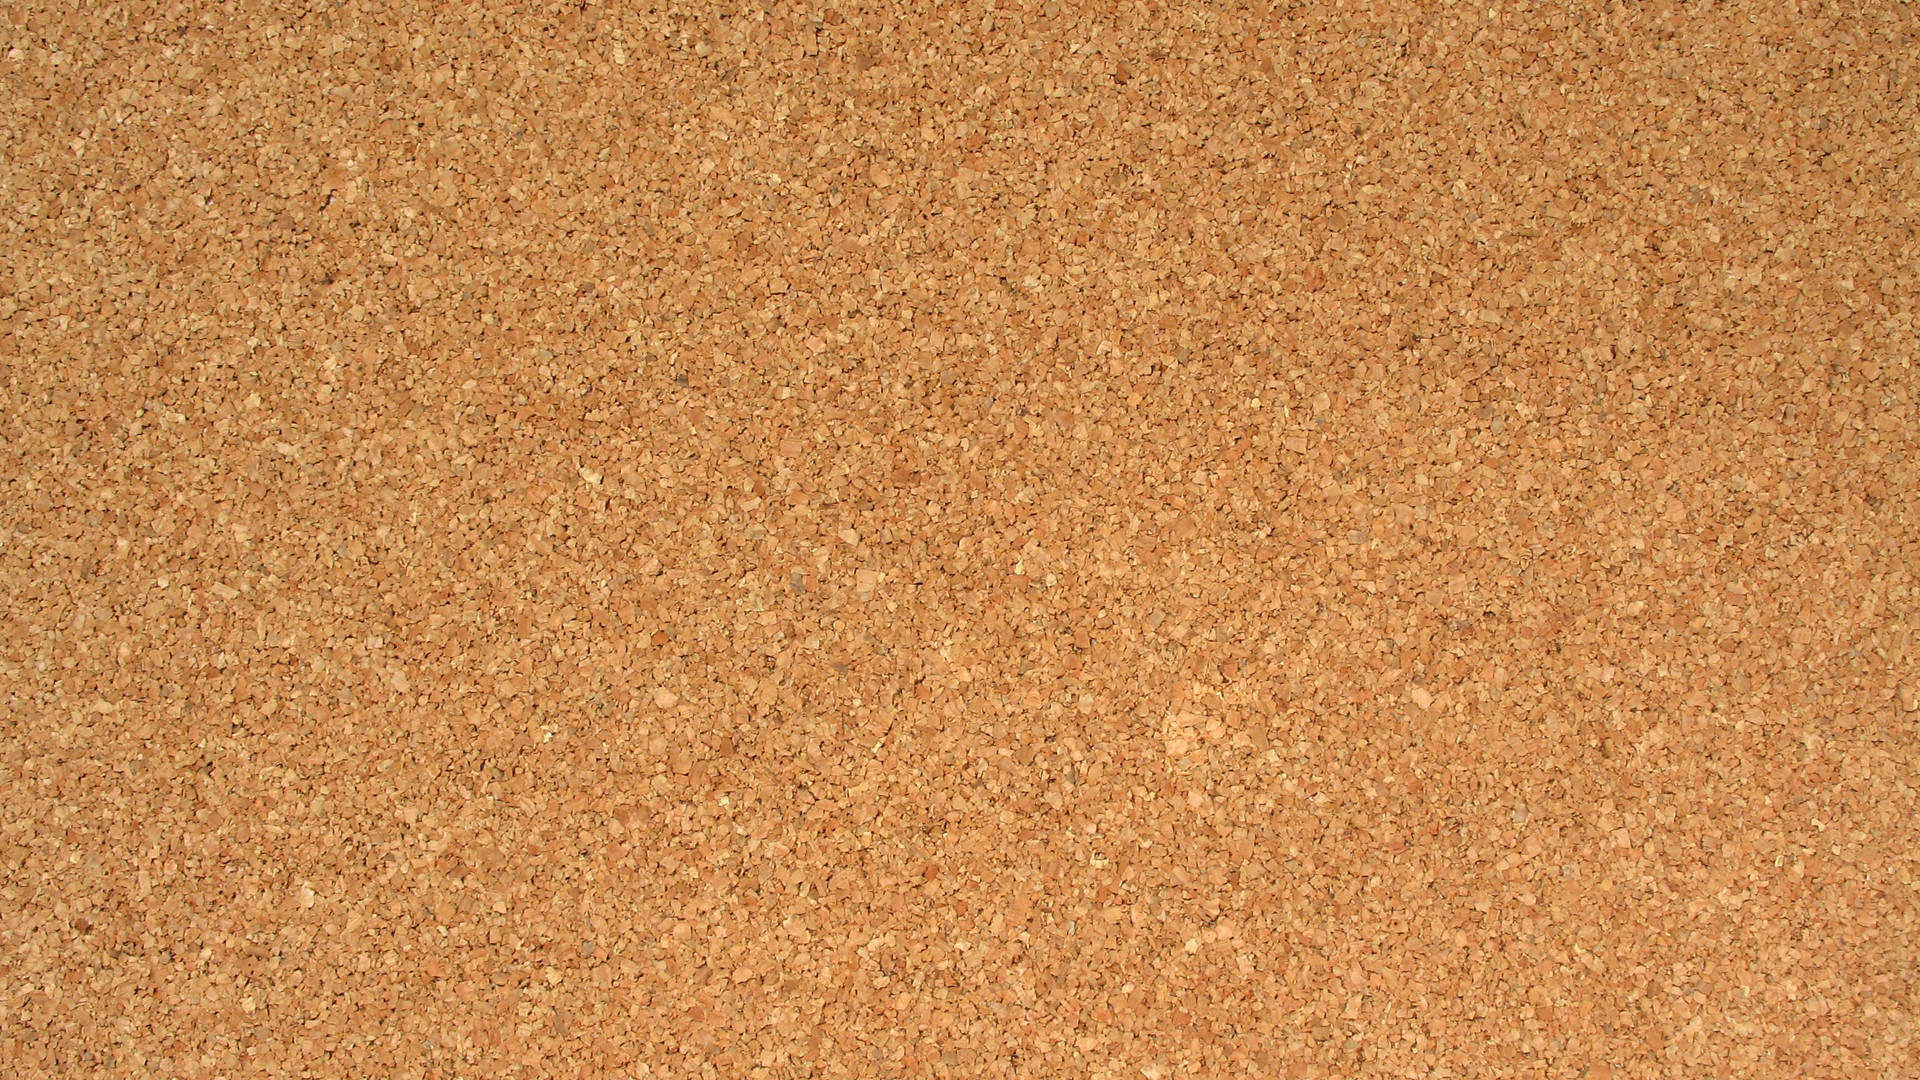 Cork Board Wallpaper 29 images 1920x1080